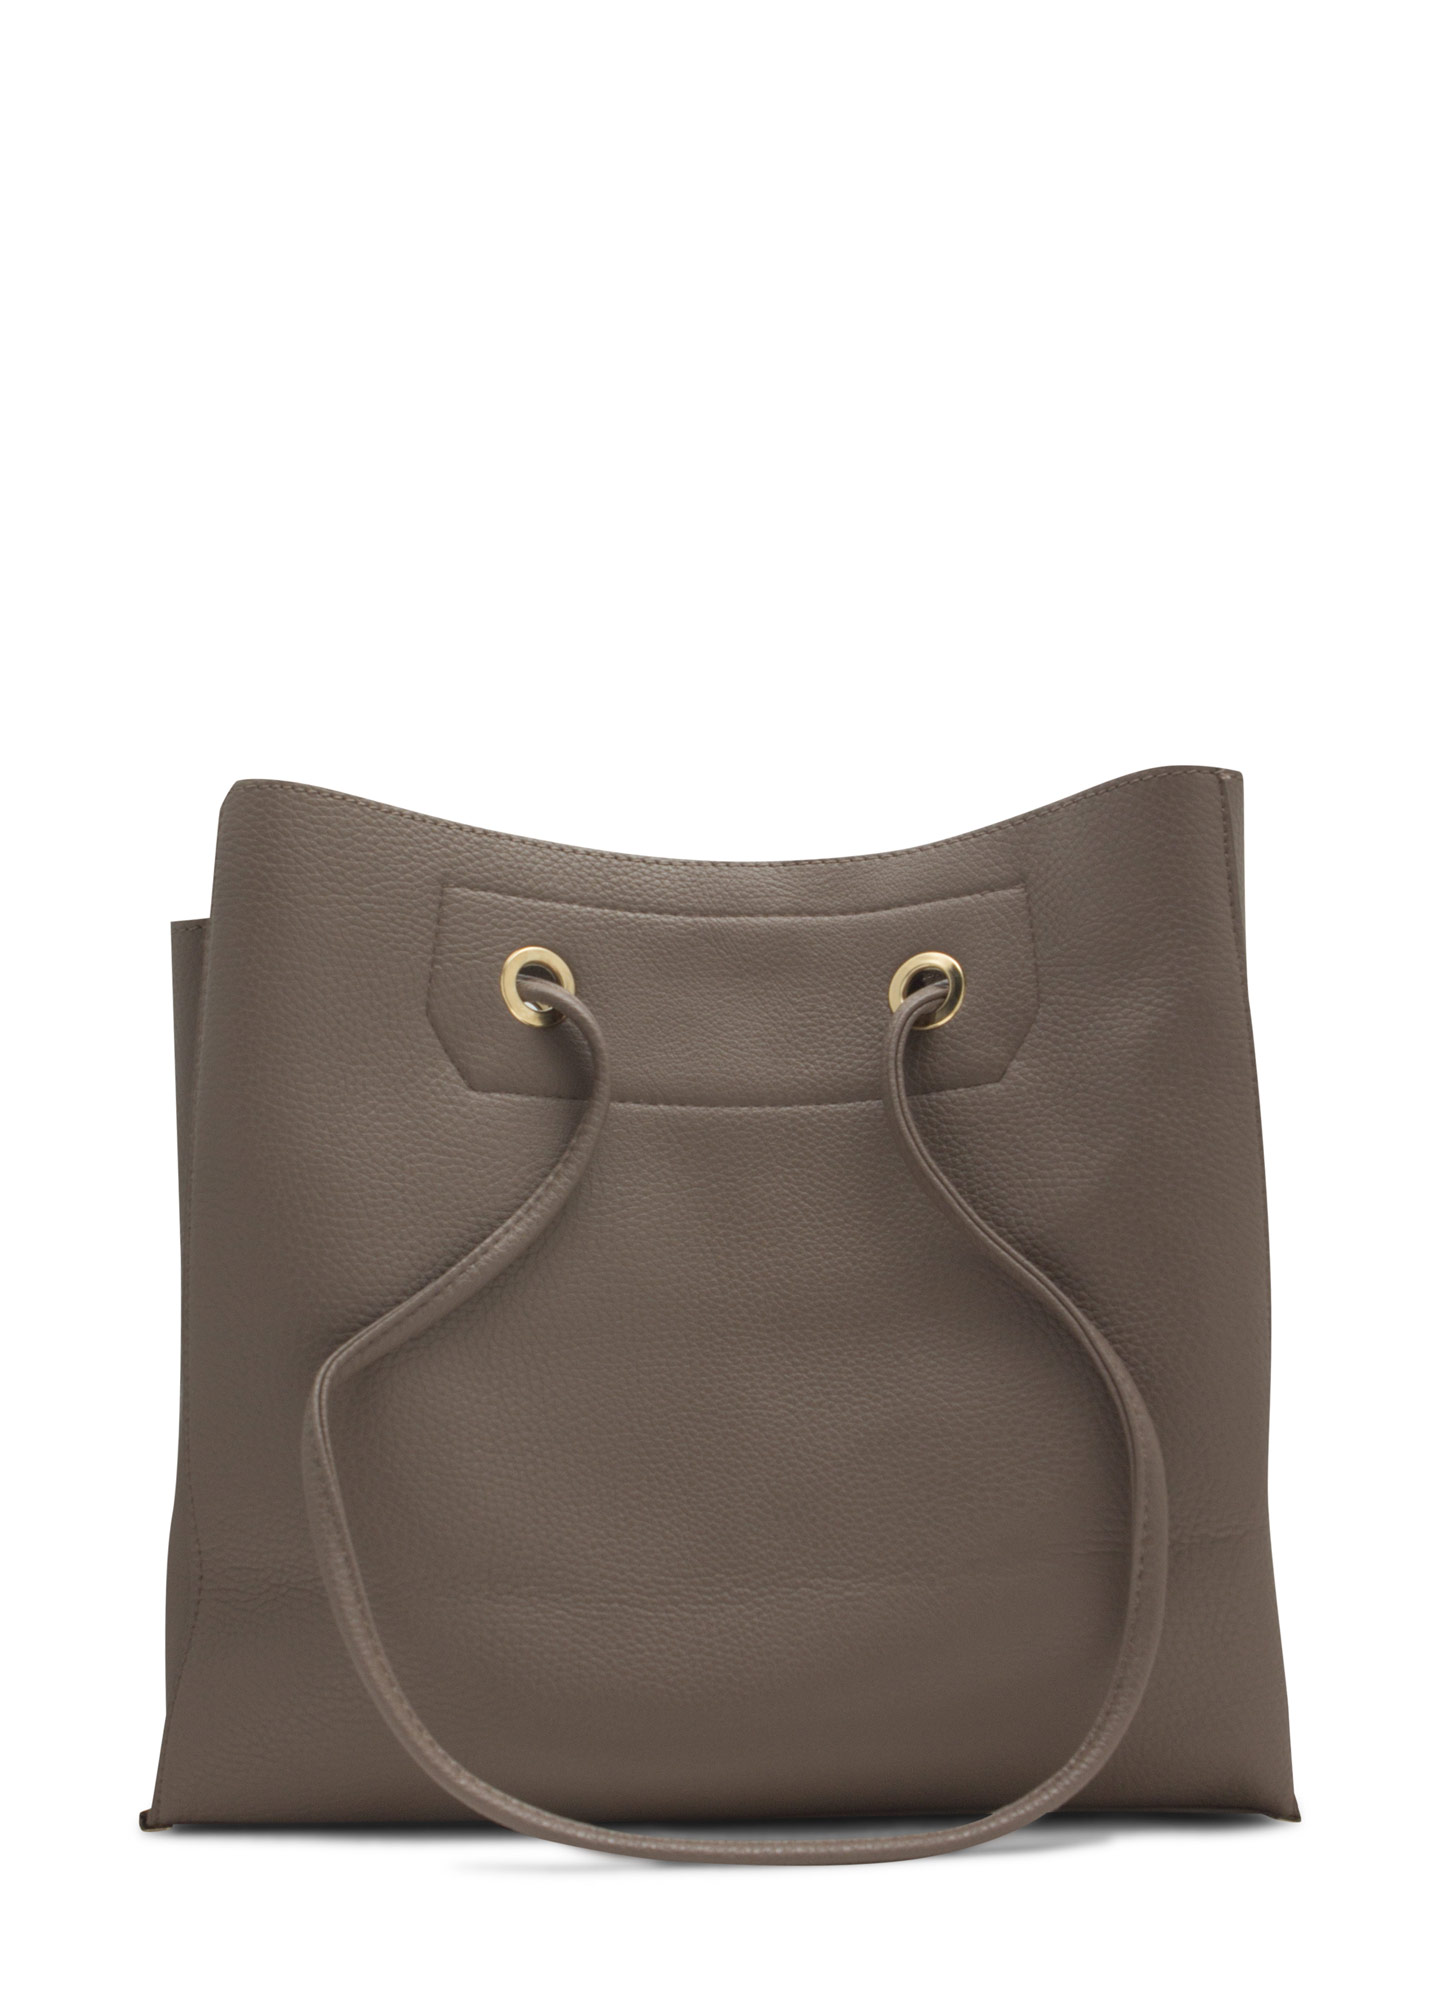 Drawstring Metal Accent Handbag TAUPE